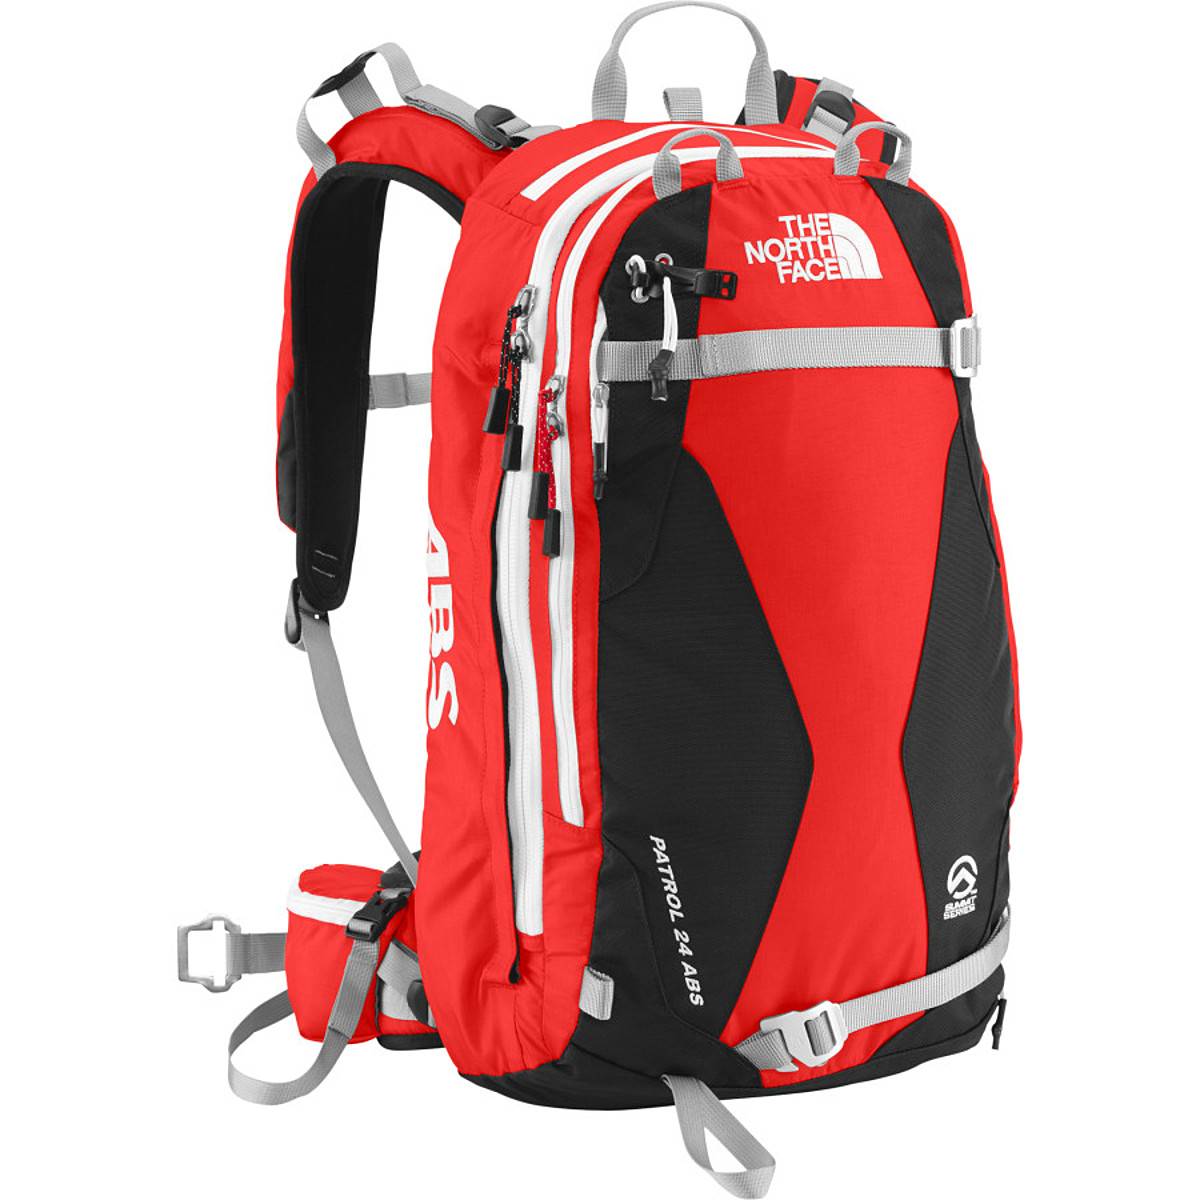 photo: The North Face Patrol 24 ABS avalanche airbag pack